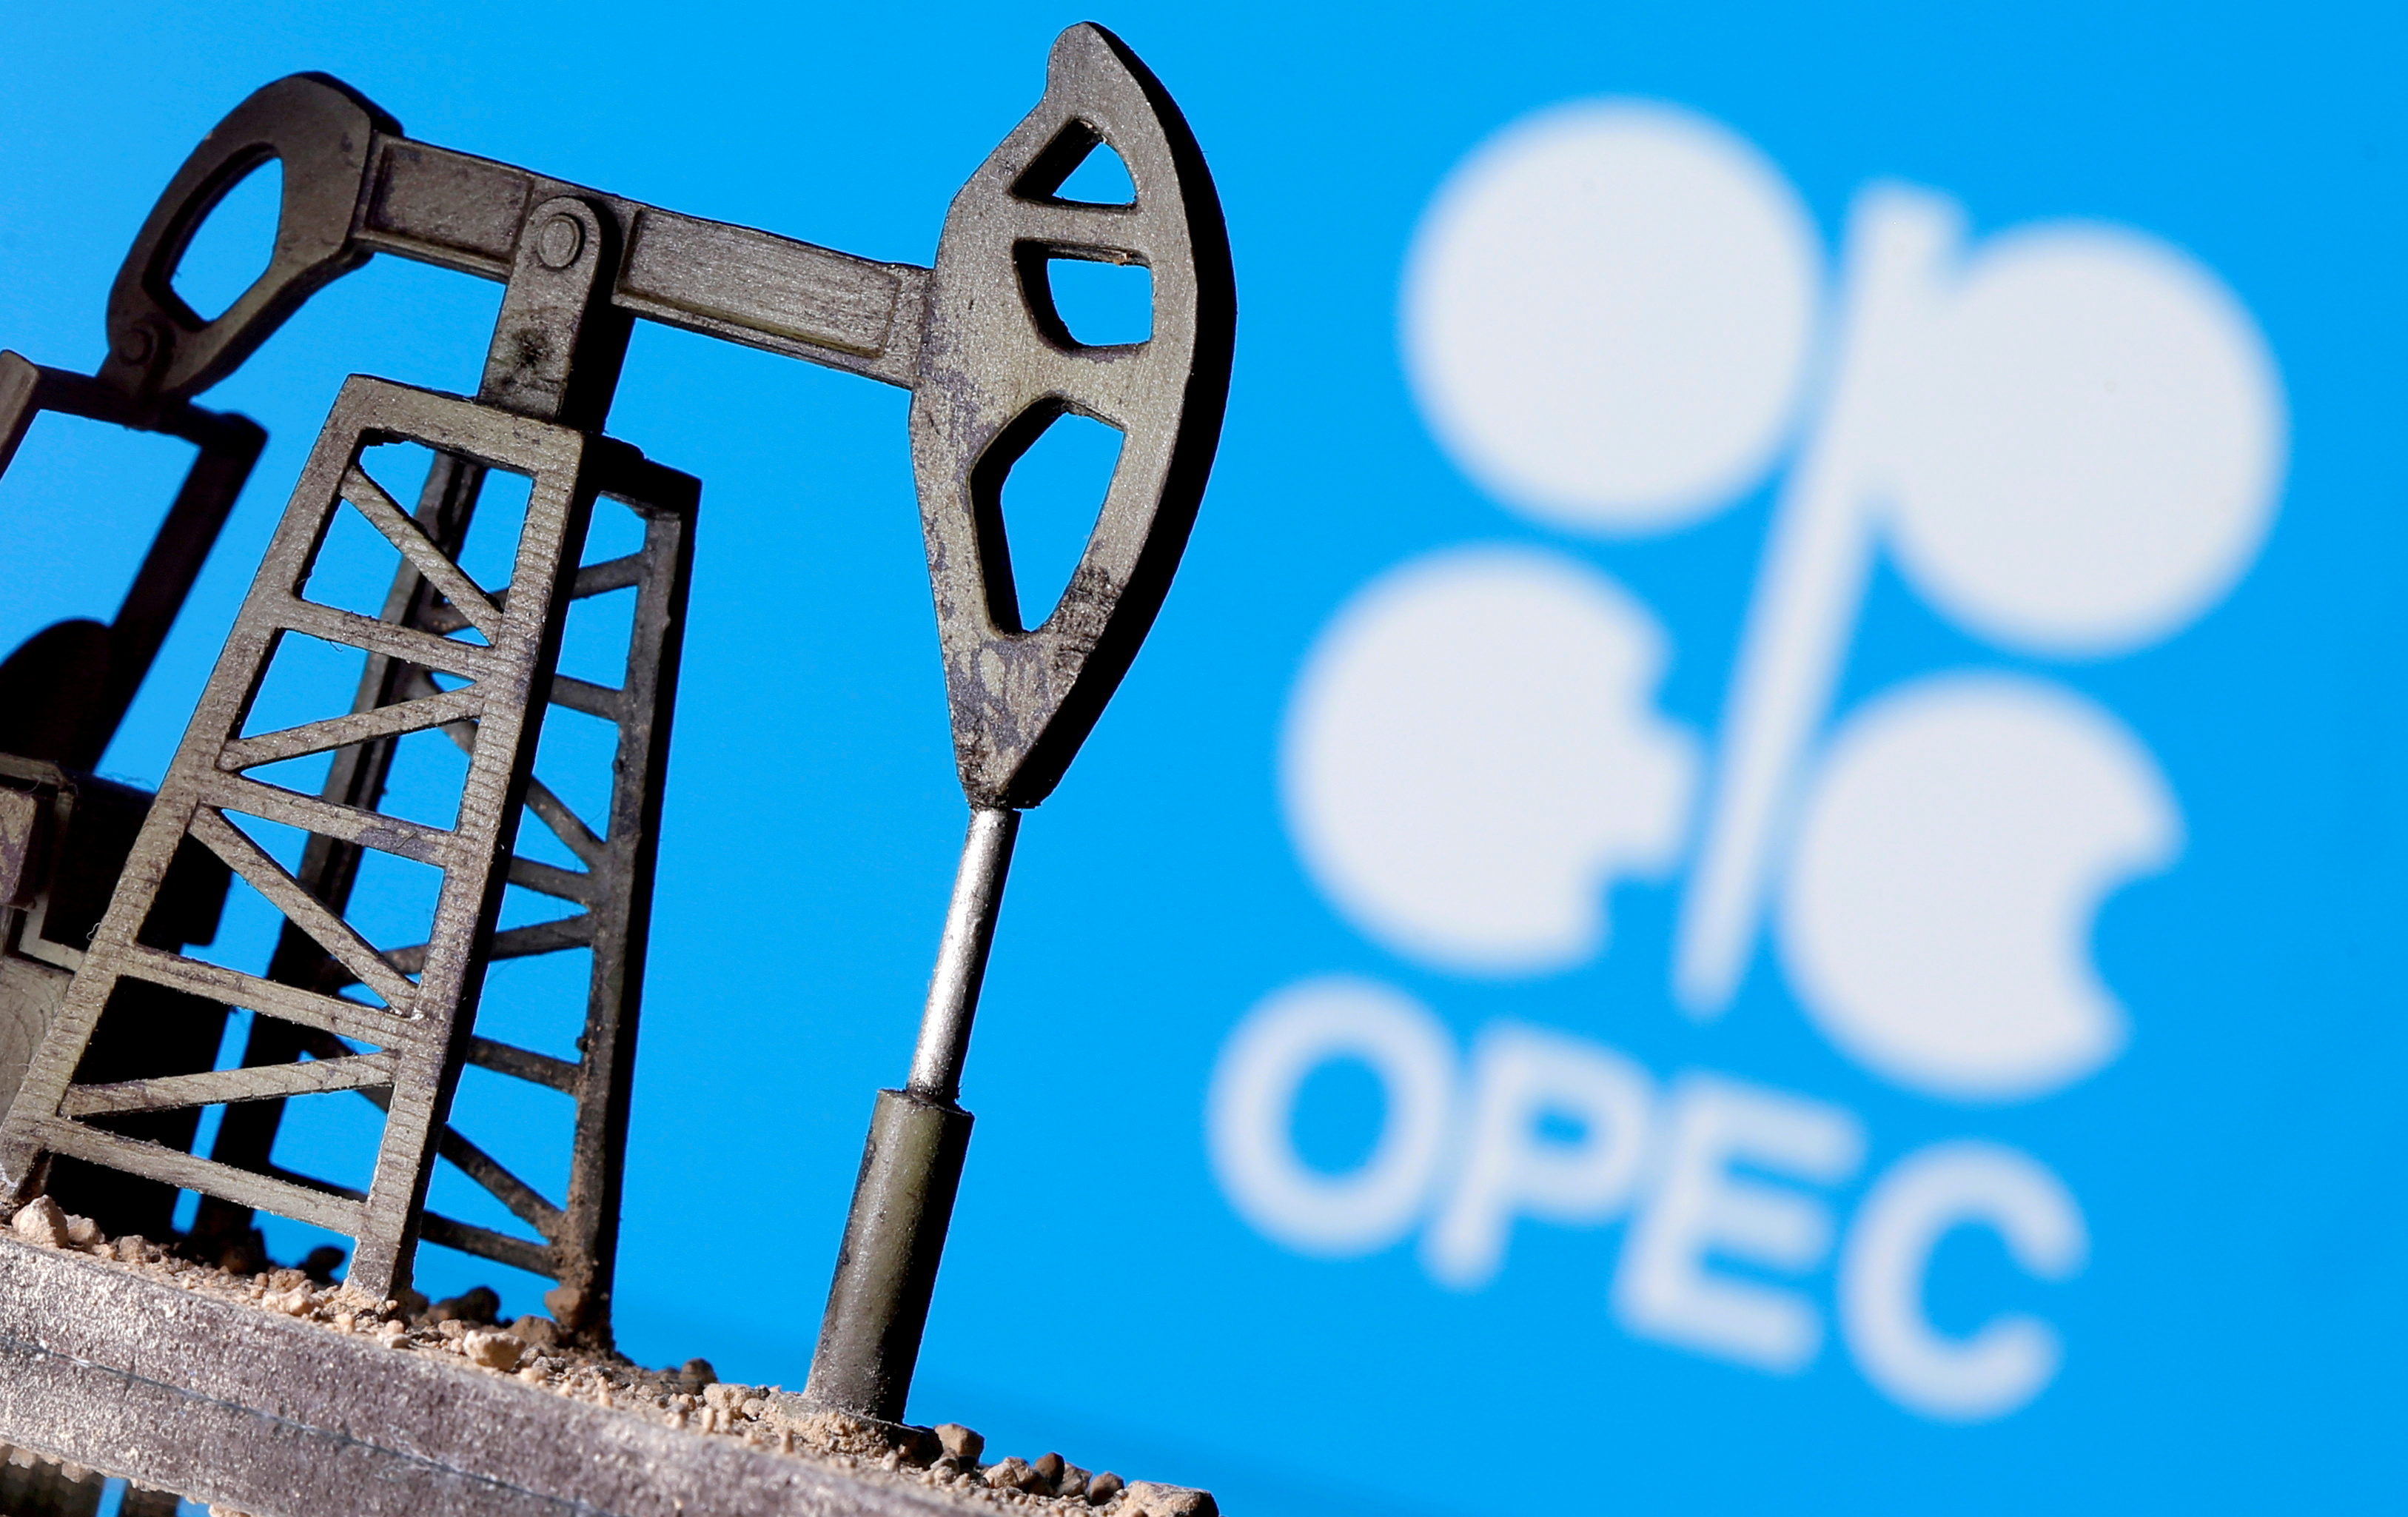 A 3D-printed oil pump jack is seen in front of displayed OPEC logo in this illustration picture, April 14, 2020. REUTERS/Dado Ruvic